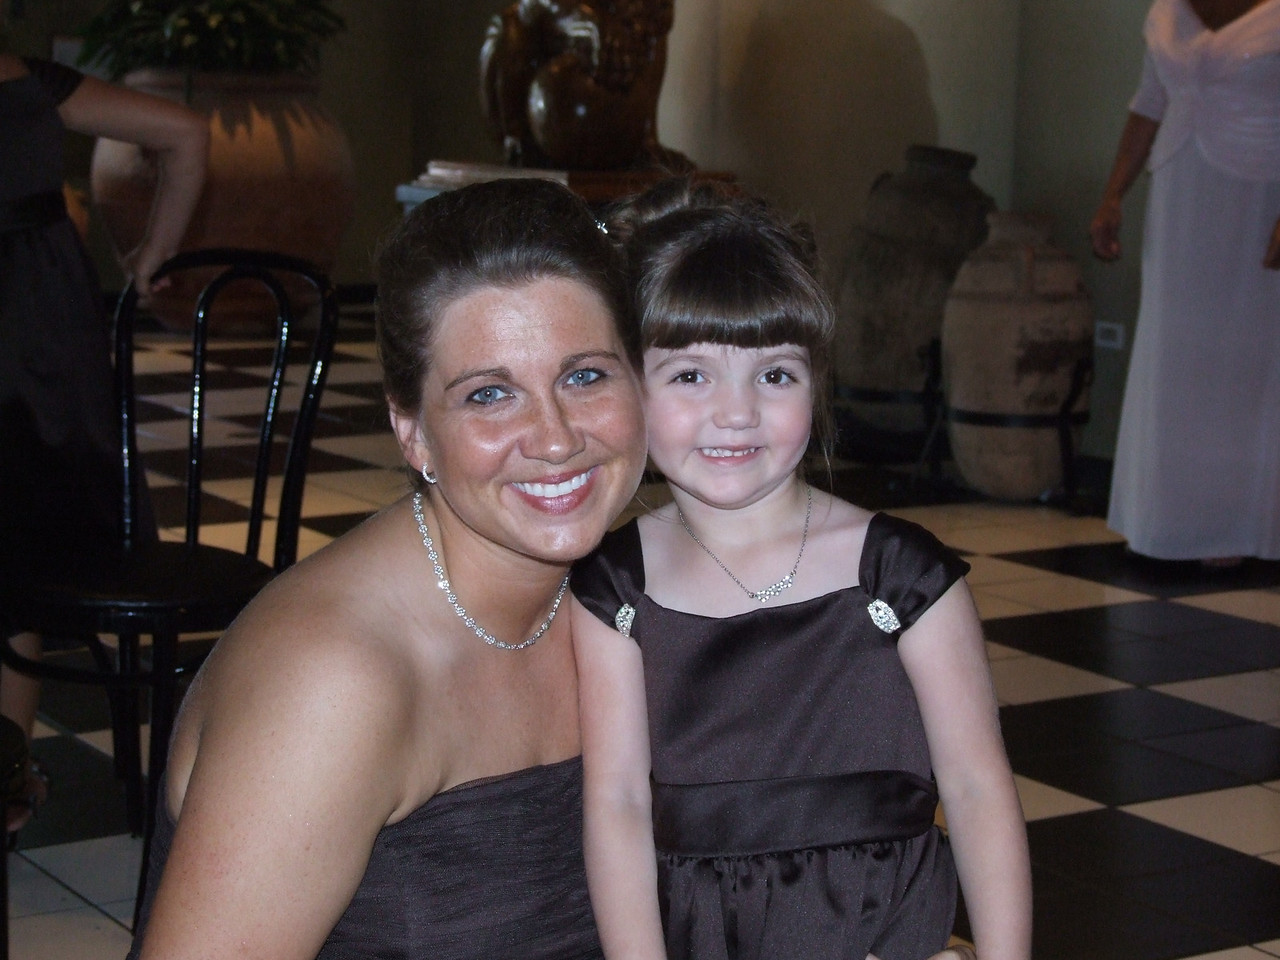 Mia and I at Natty's wedding.